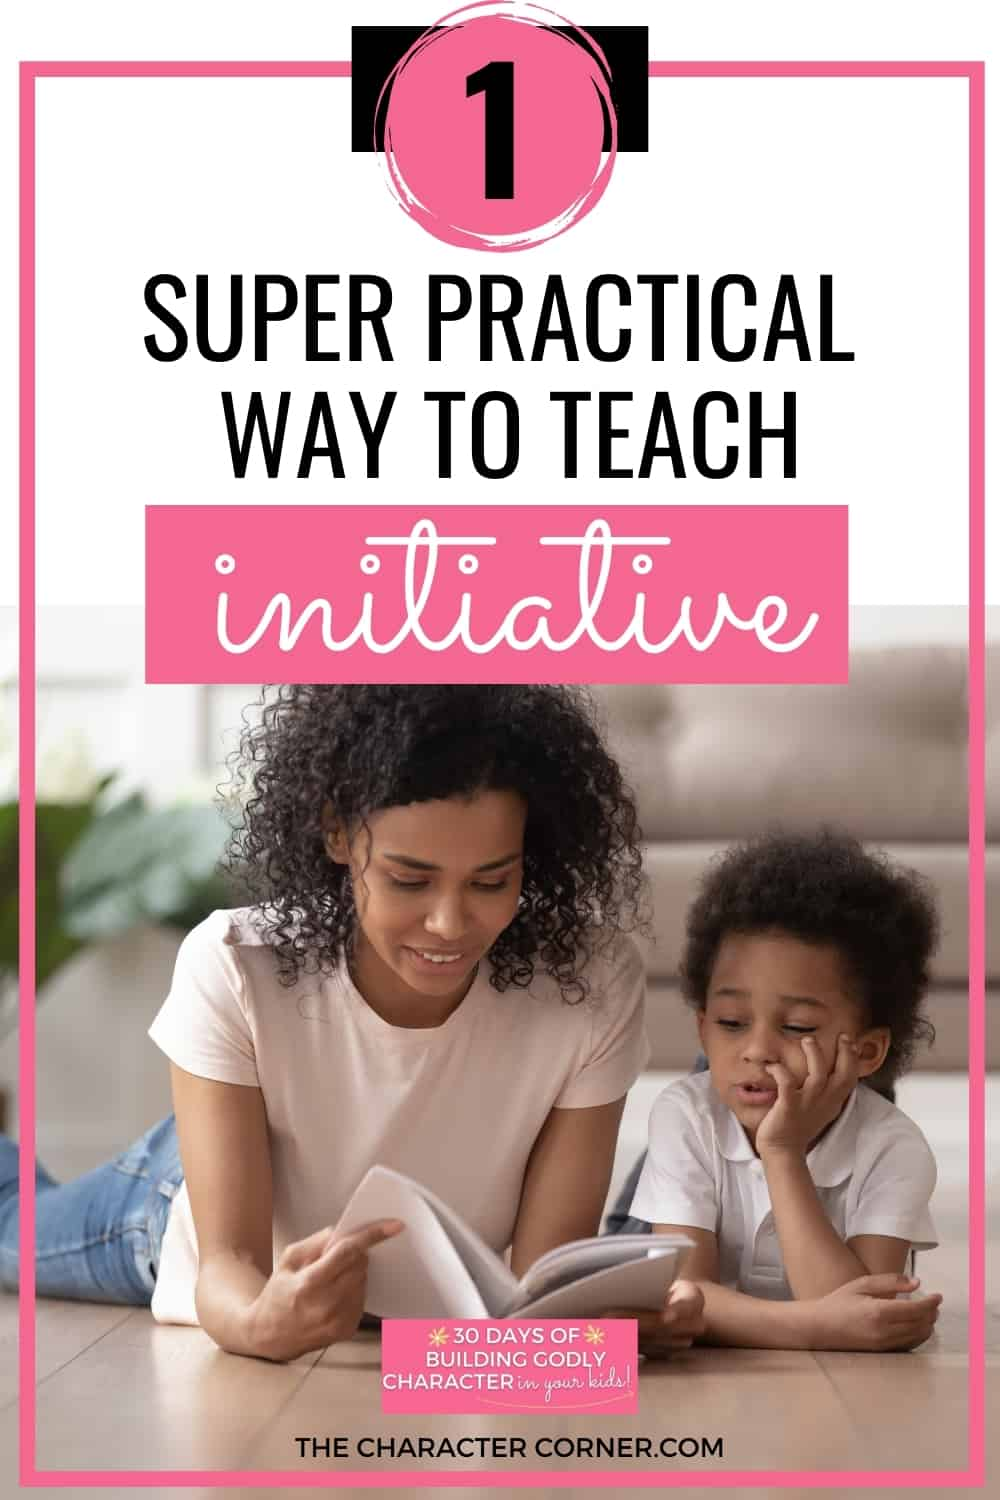 mom teaching young child how to grow in character. Text on image reads:One Super Practical Way To Teach Initiative